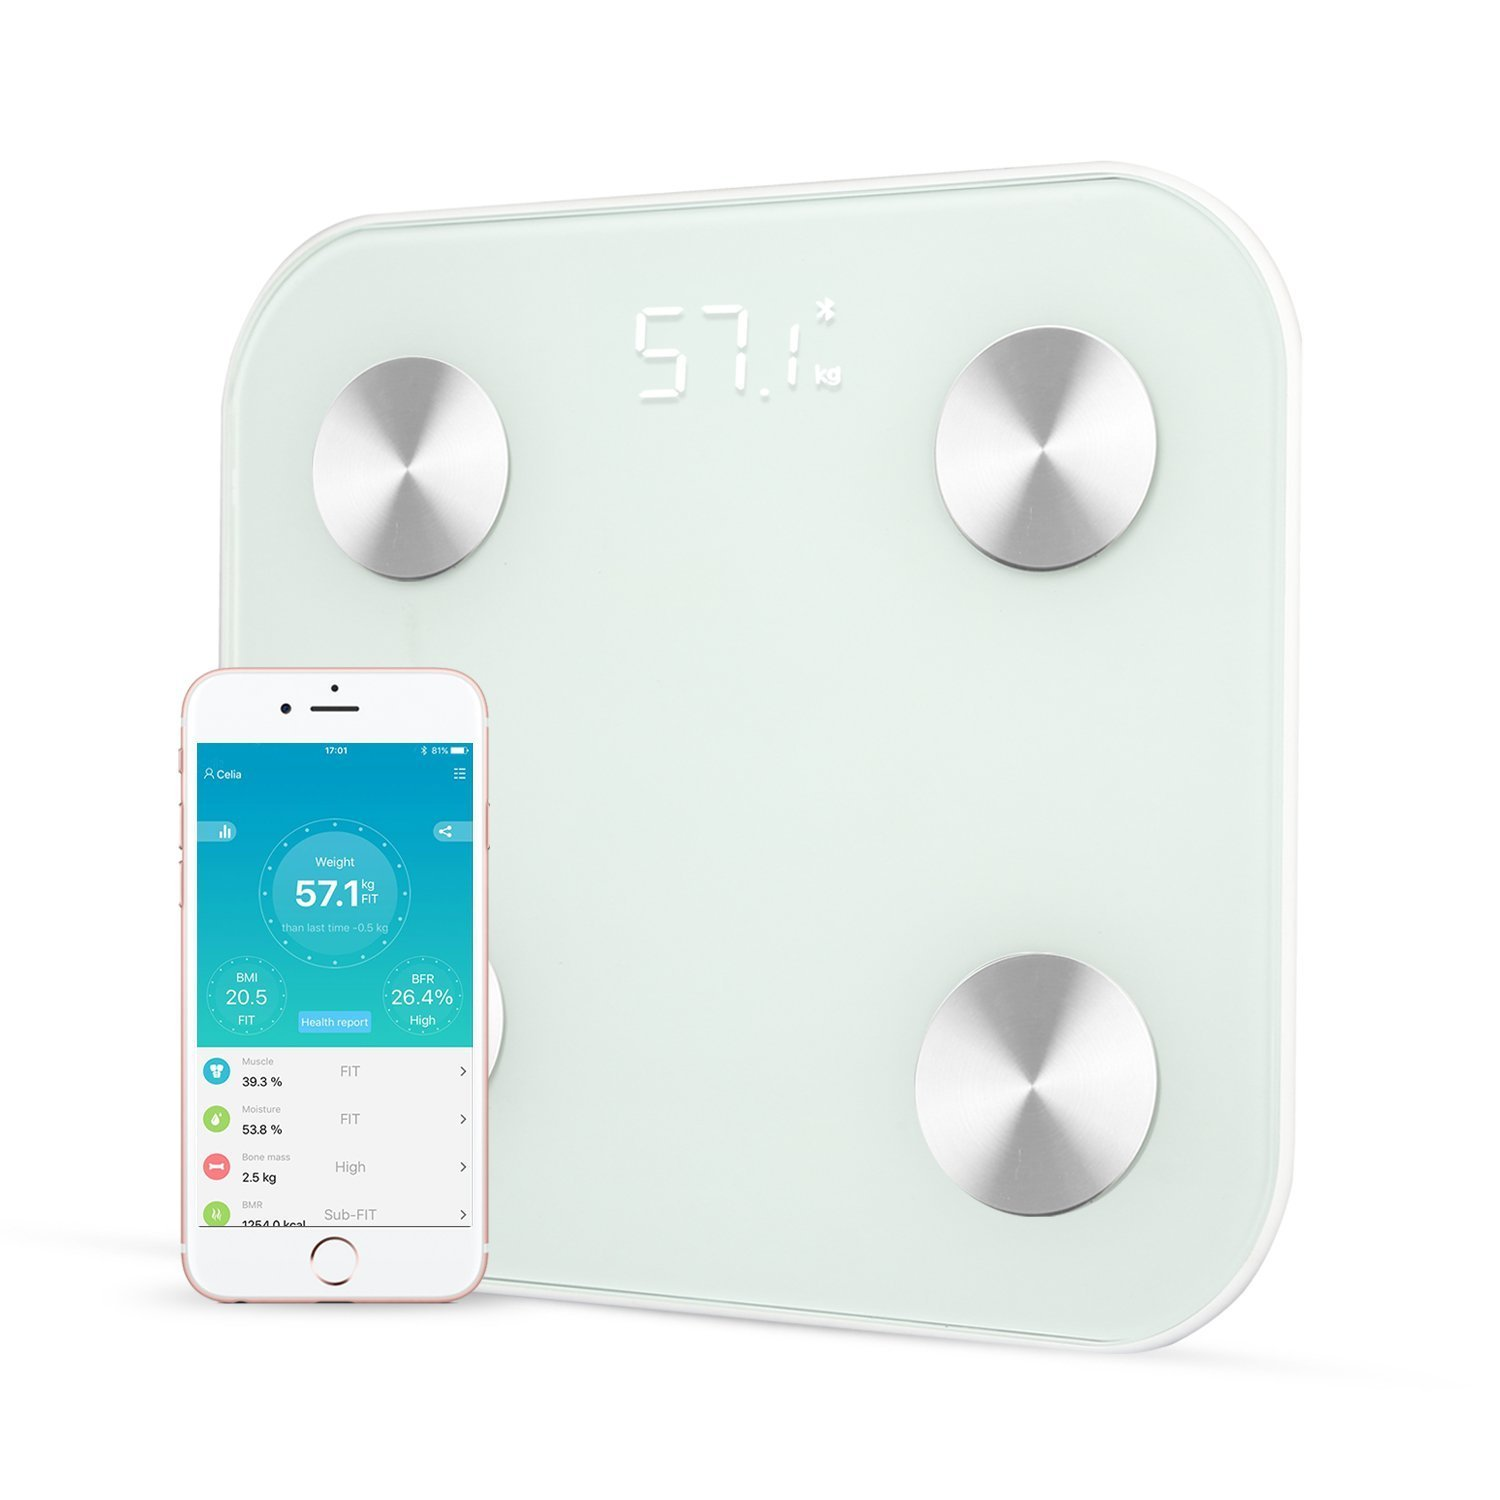 Qingta Bluetooth Smart Body Fat Scale Monitor Body Fat,Scale Body Fat,Total Body Water,Muscle Mass and Bone Mass for Your Family(White)